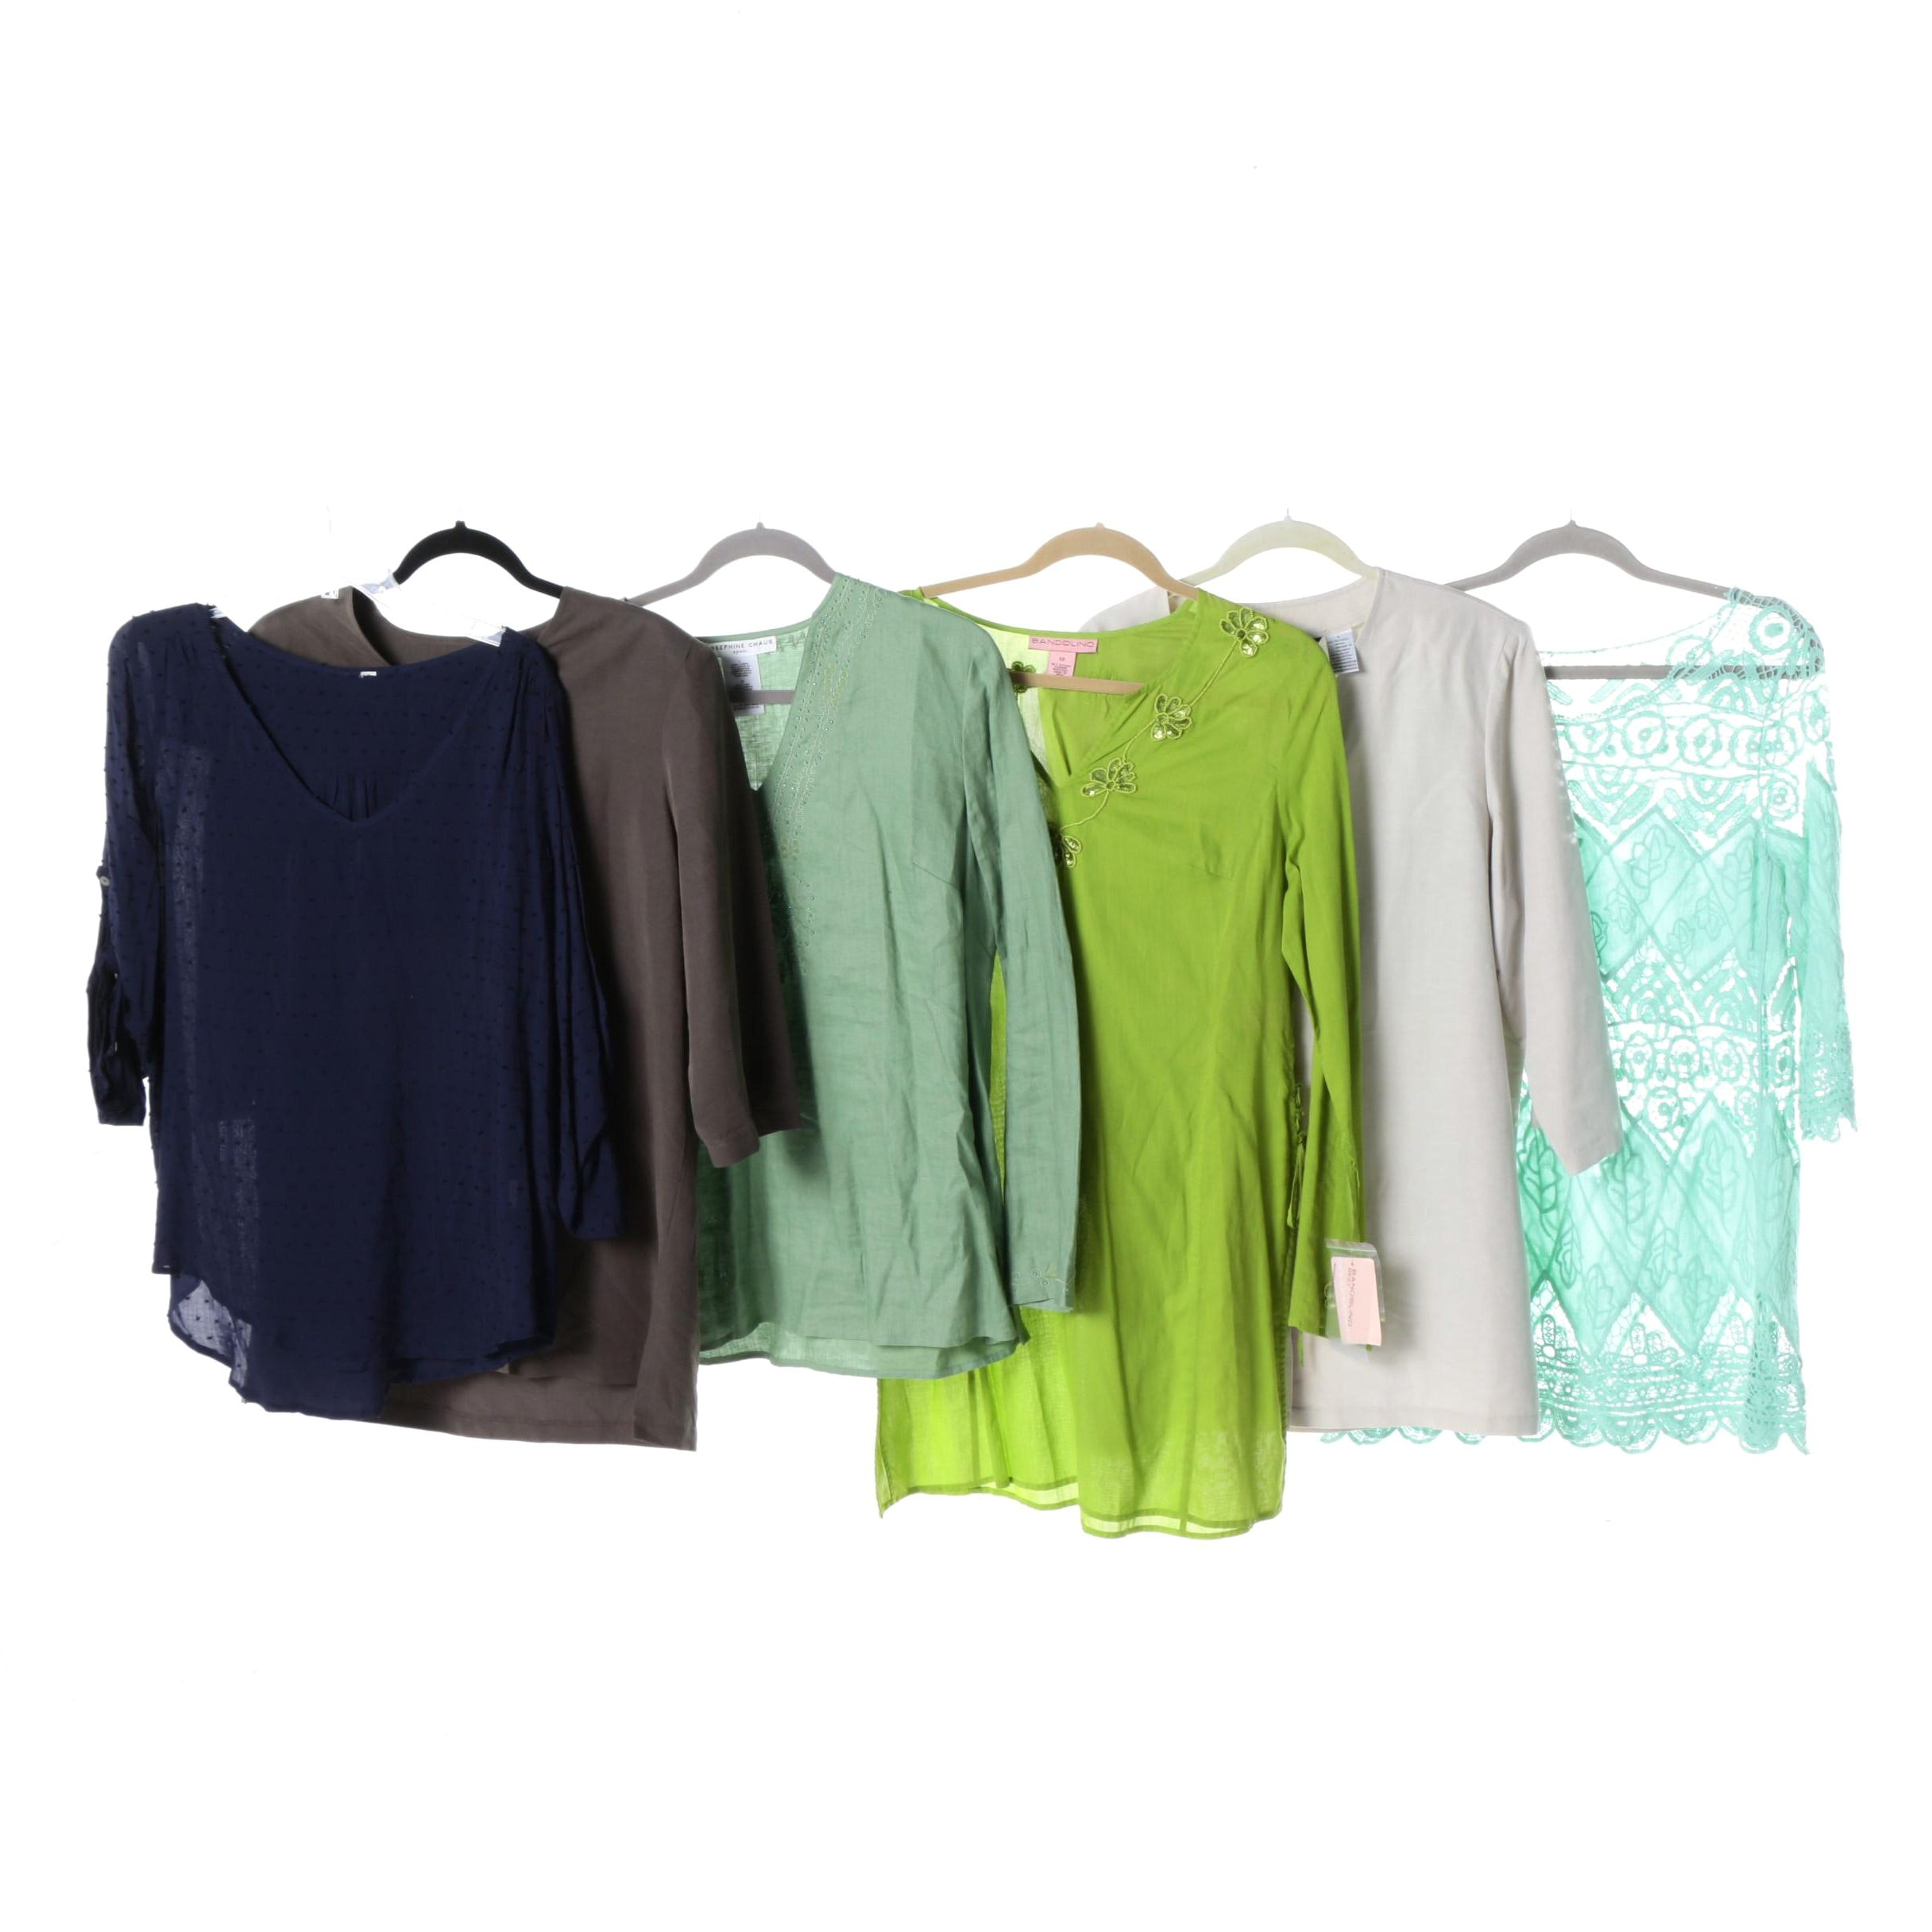 Women's Casual Blouses, Tops and Tunics